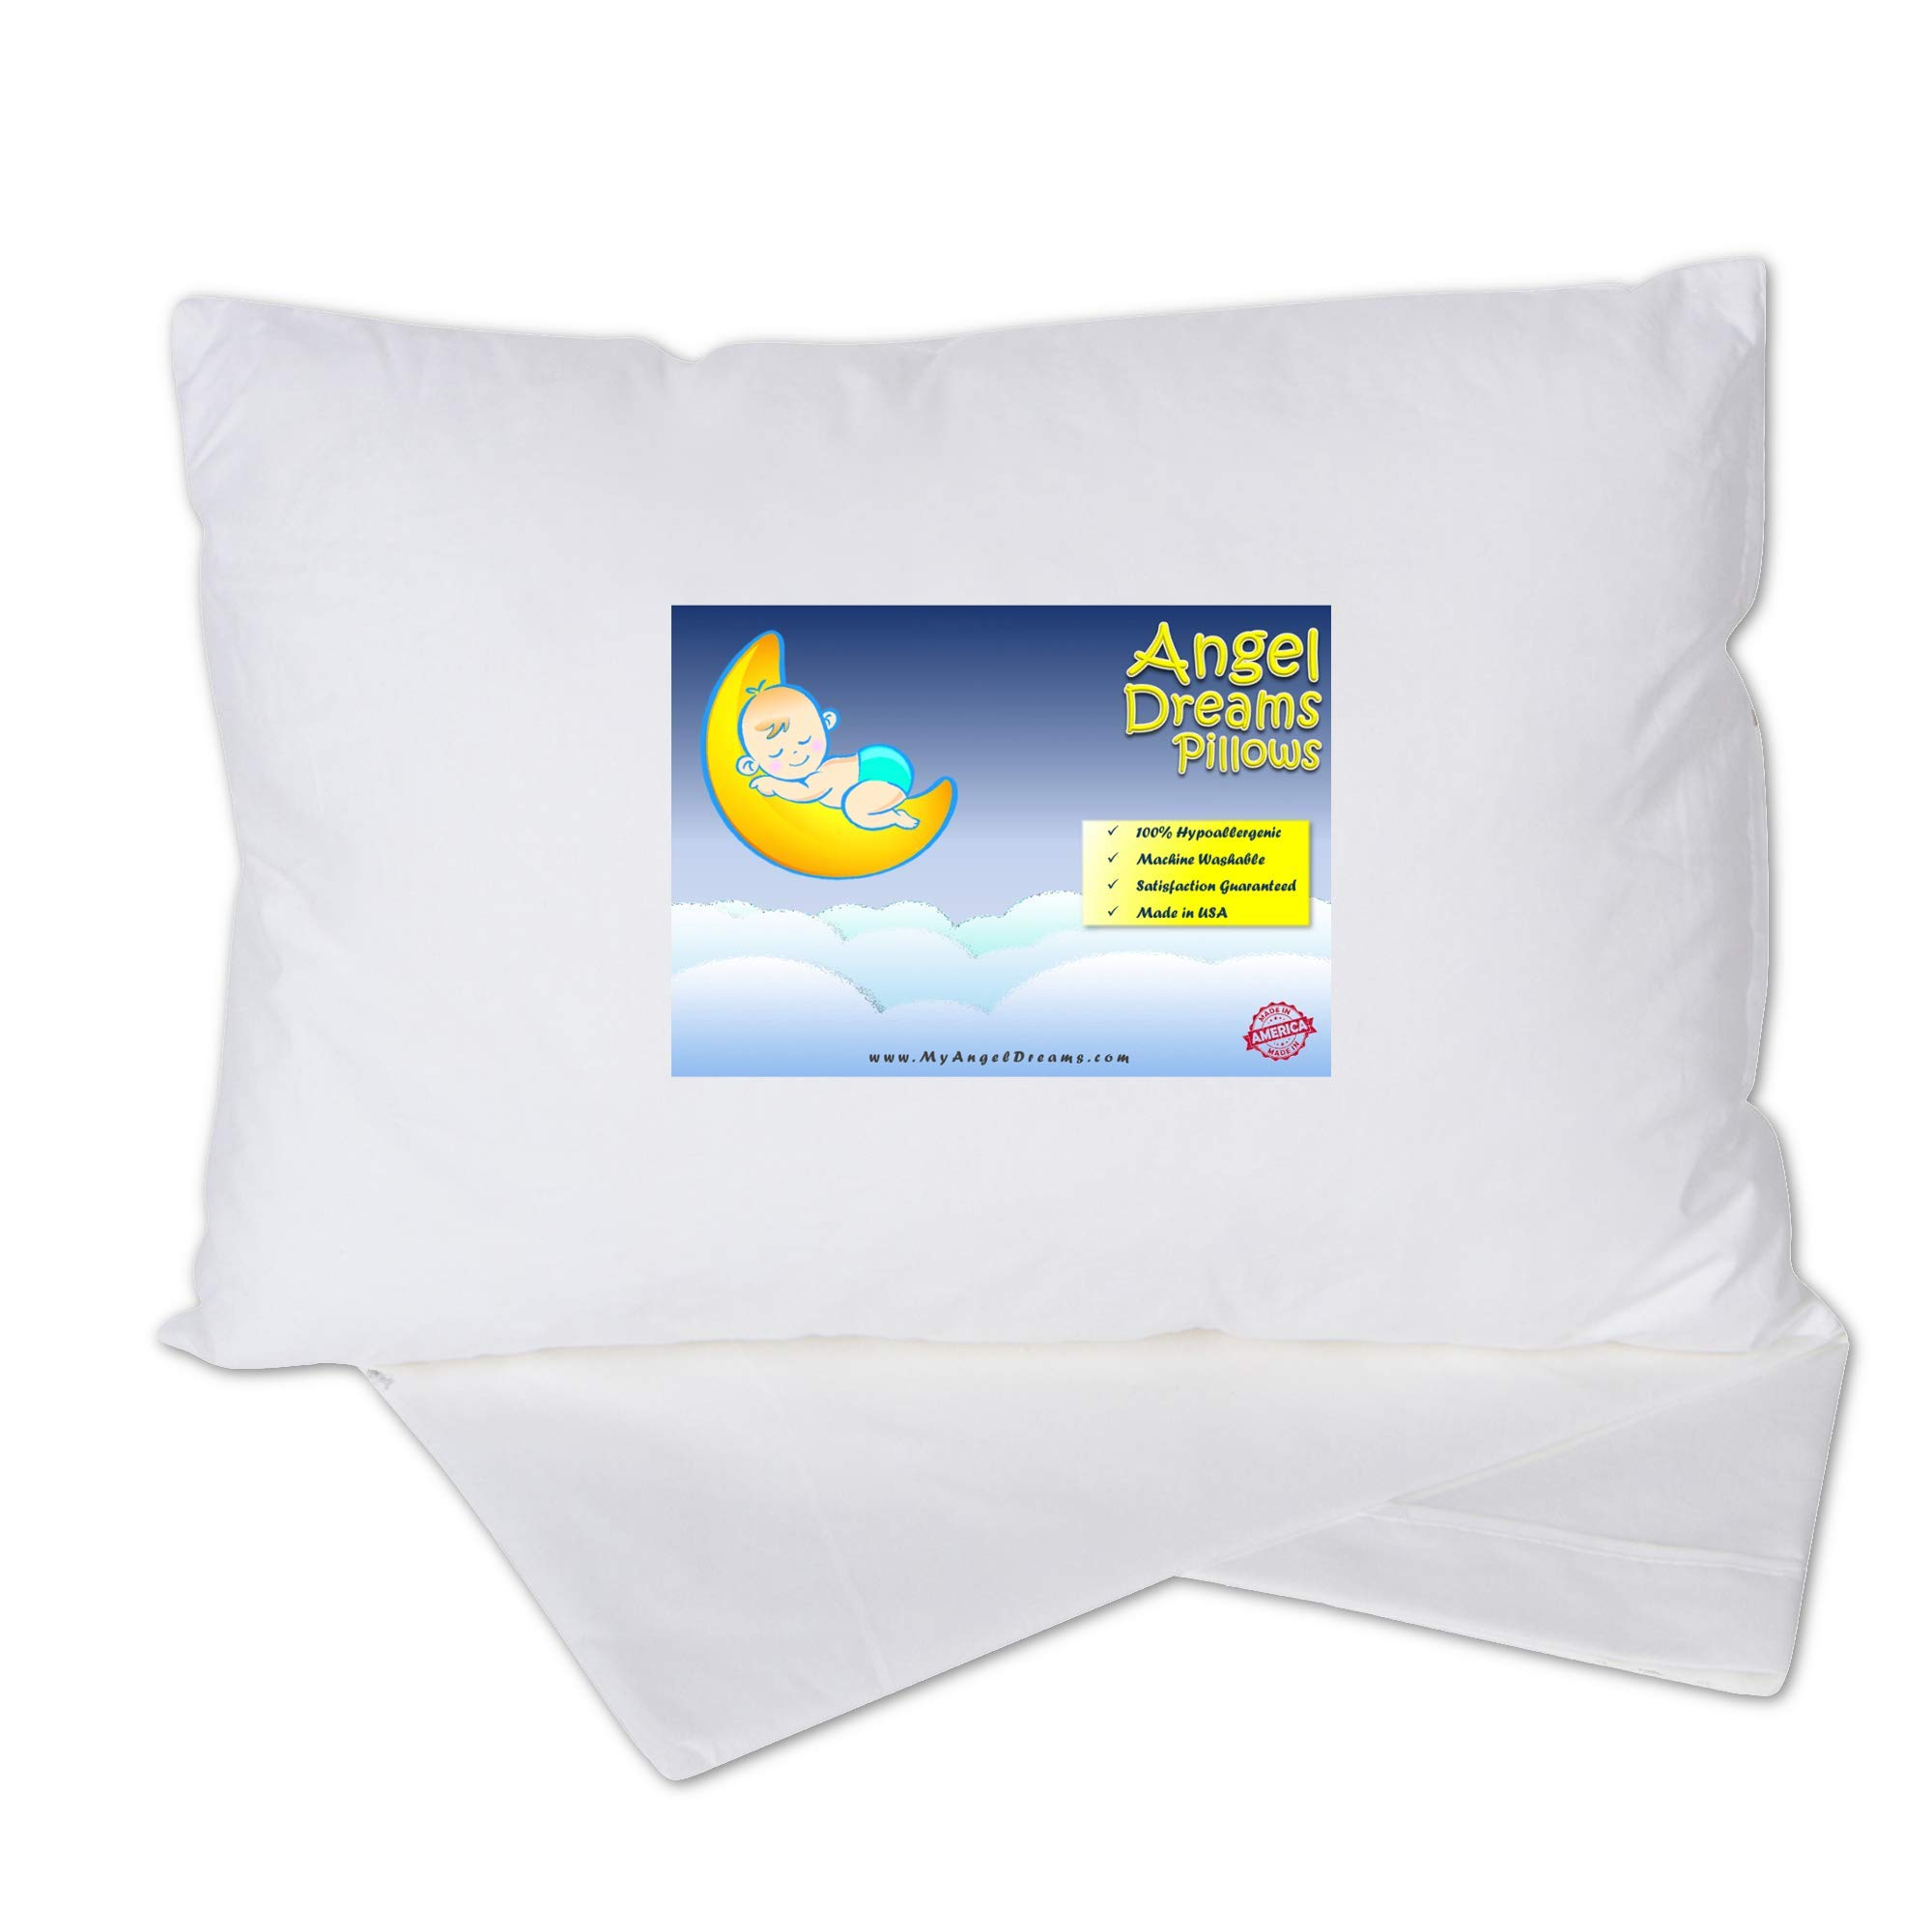 Toddler Pillow 14x19 with Pillowcase - Soft Kids Pillows for Sleeping - Made in USA - Perfect for Travel, Toddler Cot, Bed Set - Hypoallergenic - Toddlers, Infant, Baby by Angel Dreams